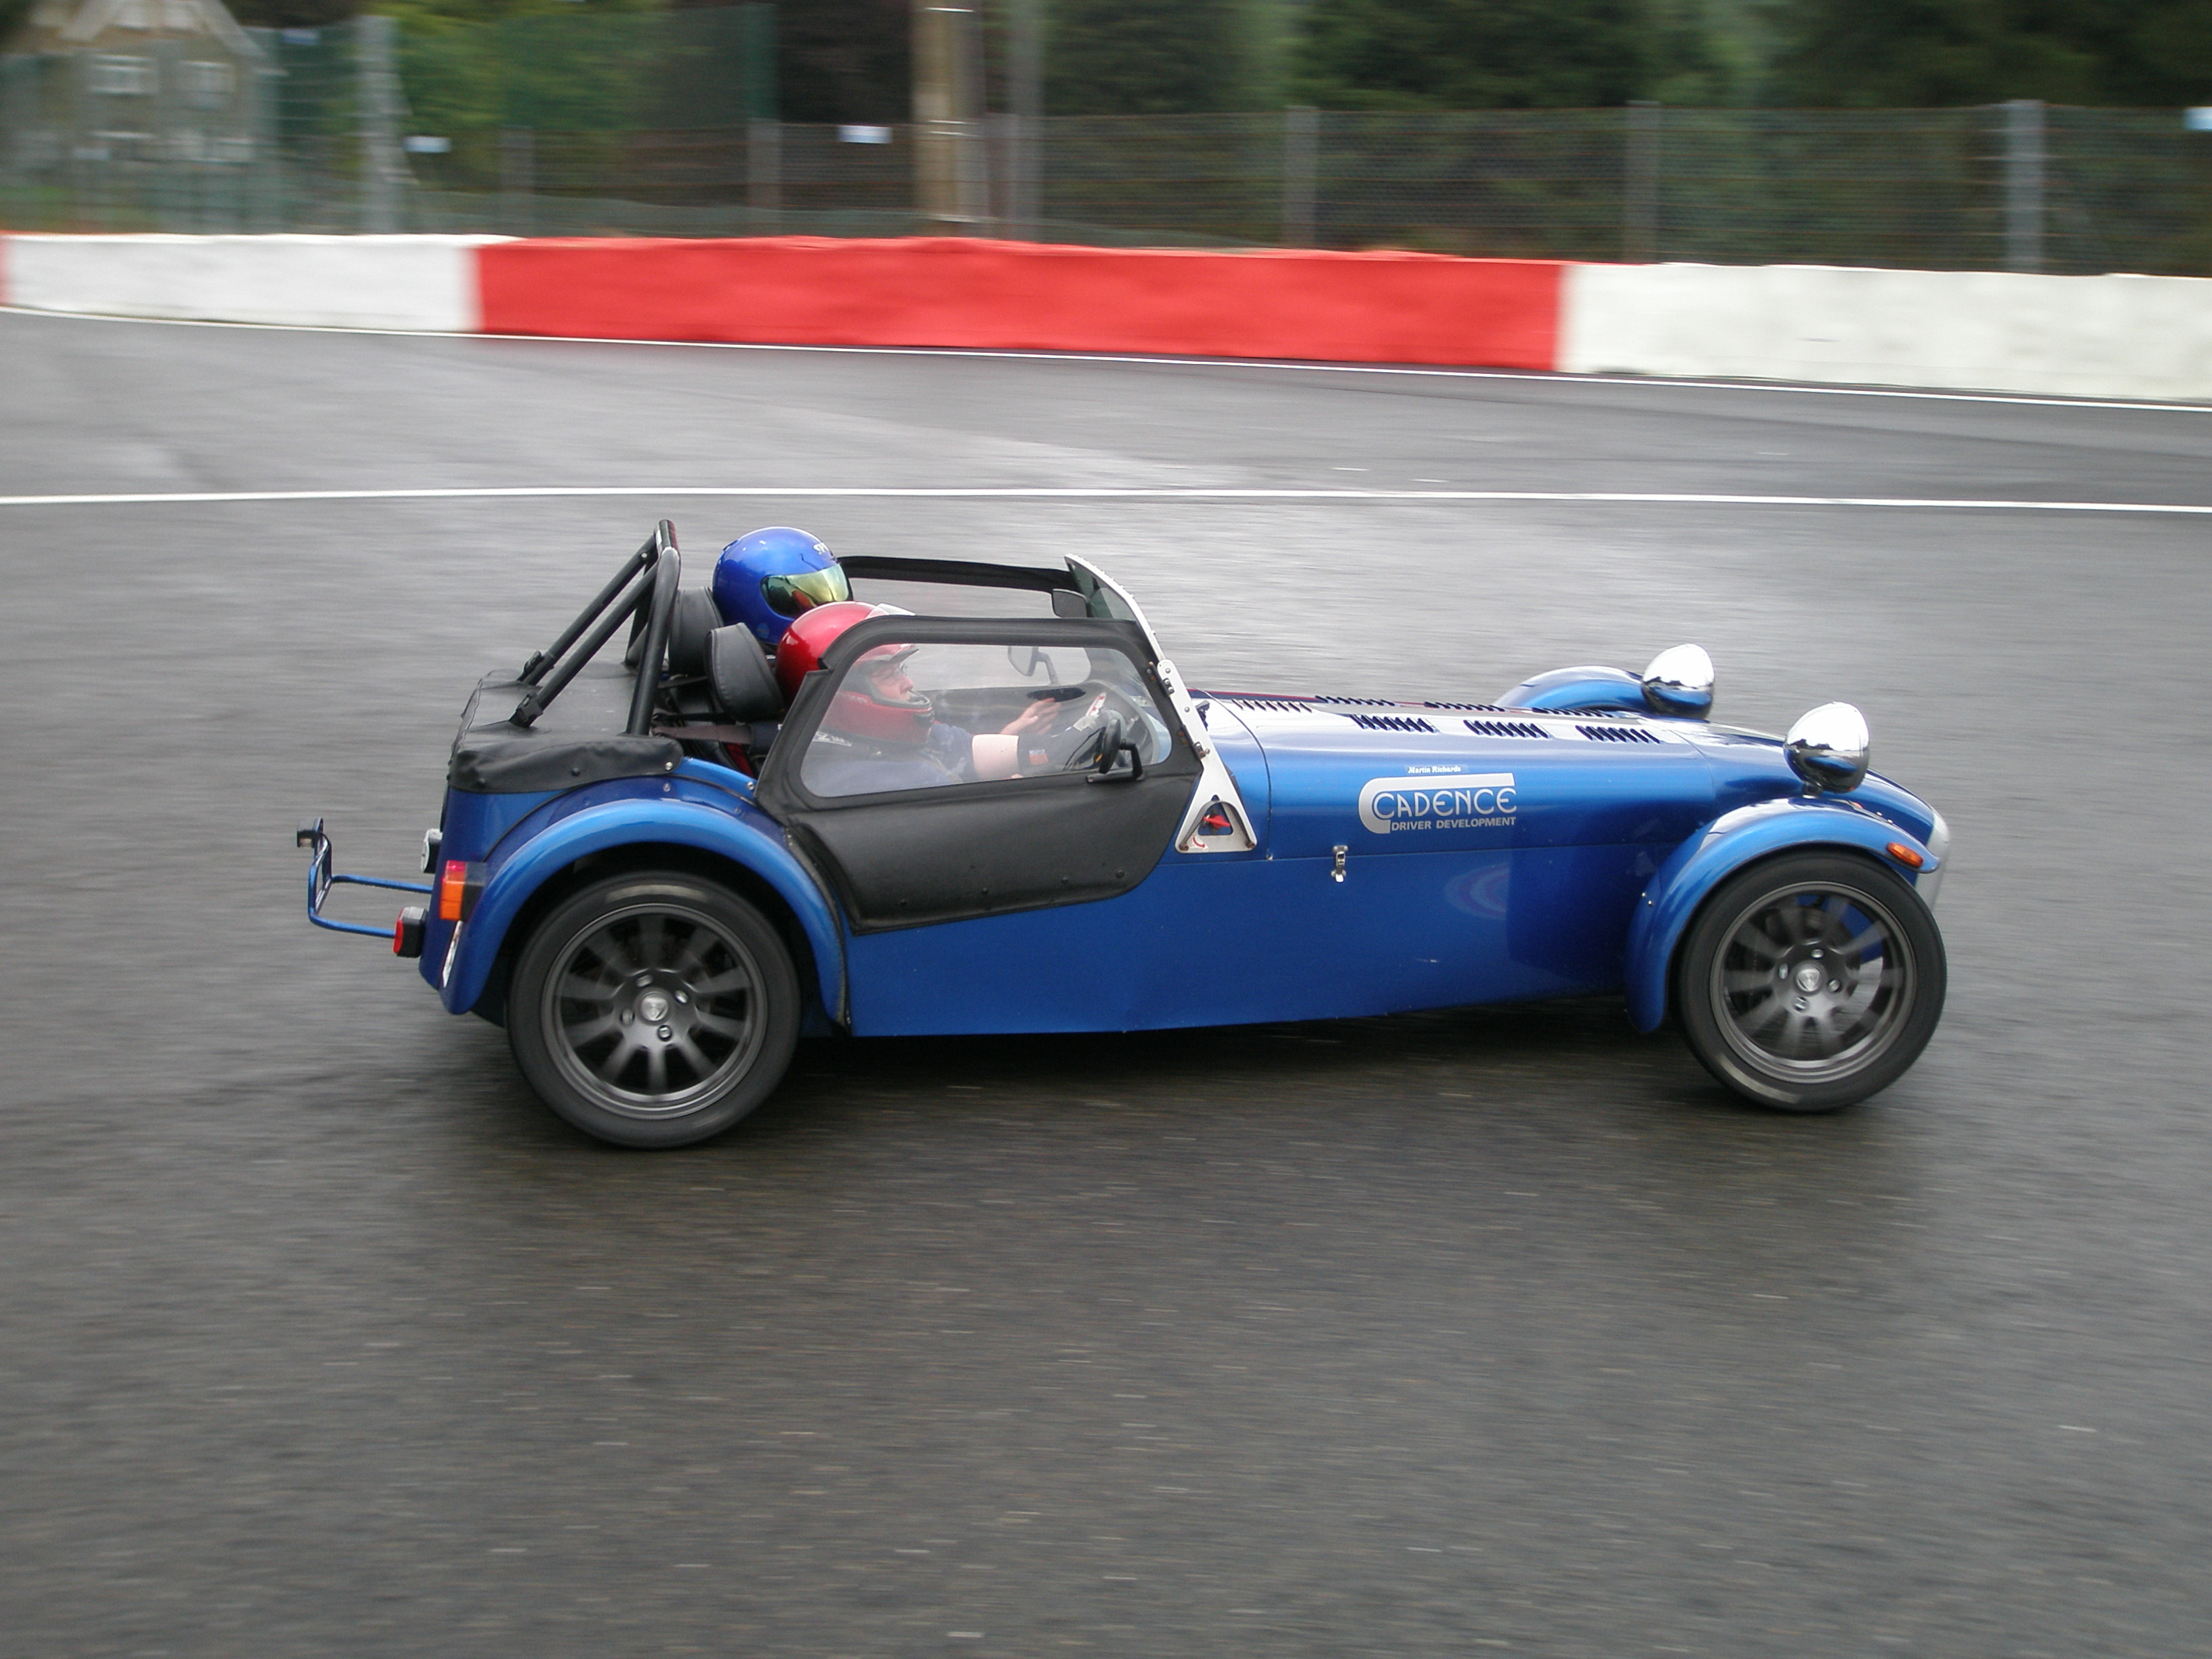 1992 Caterham Super 7 #8